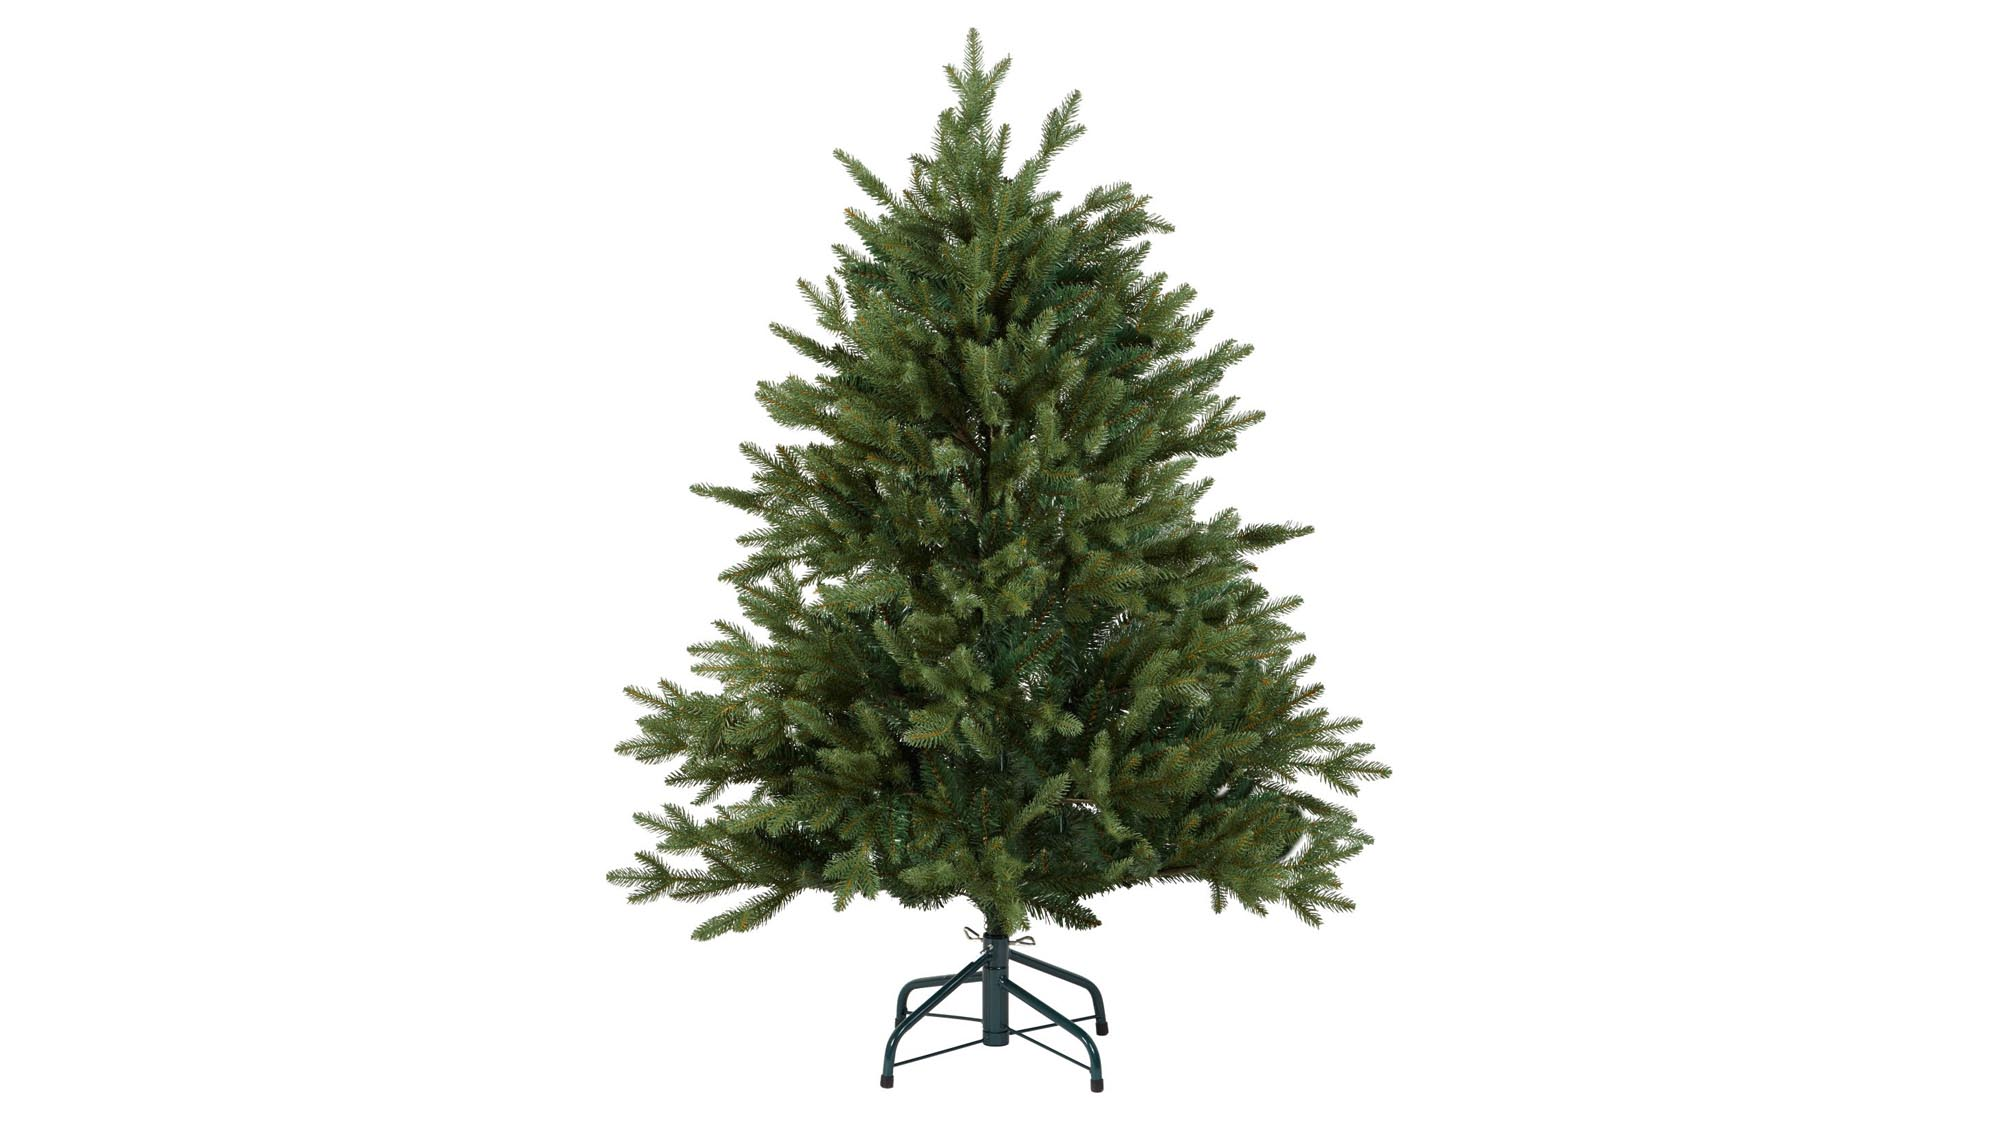 Best artificial Christmas trees 2017: Have a hassle-free Xmas with ...